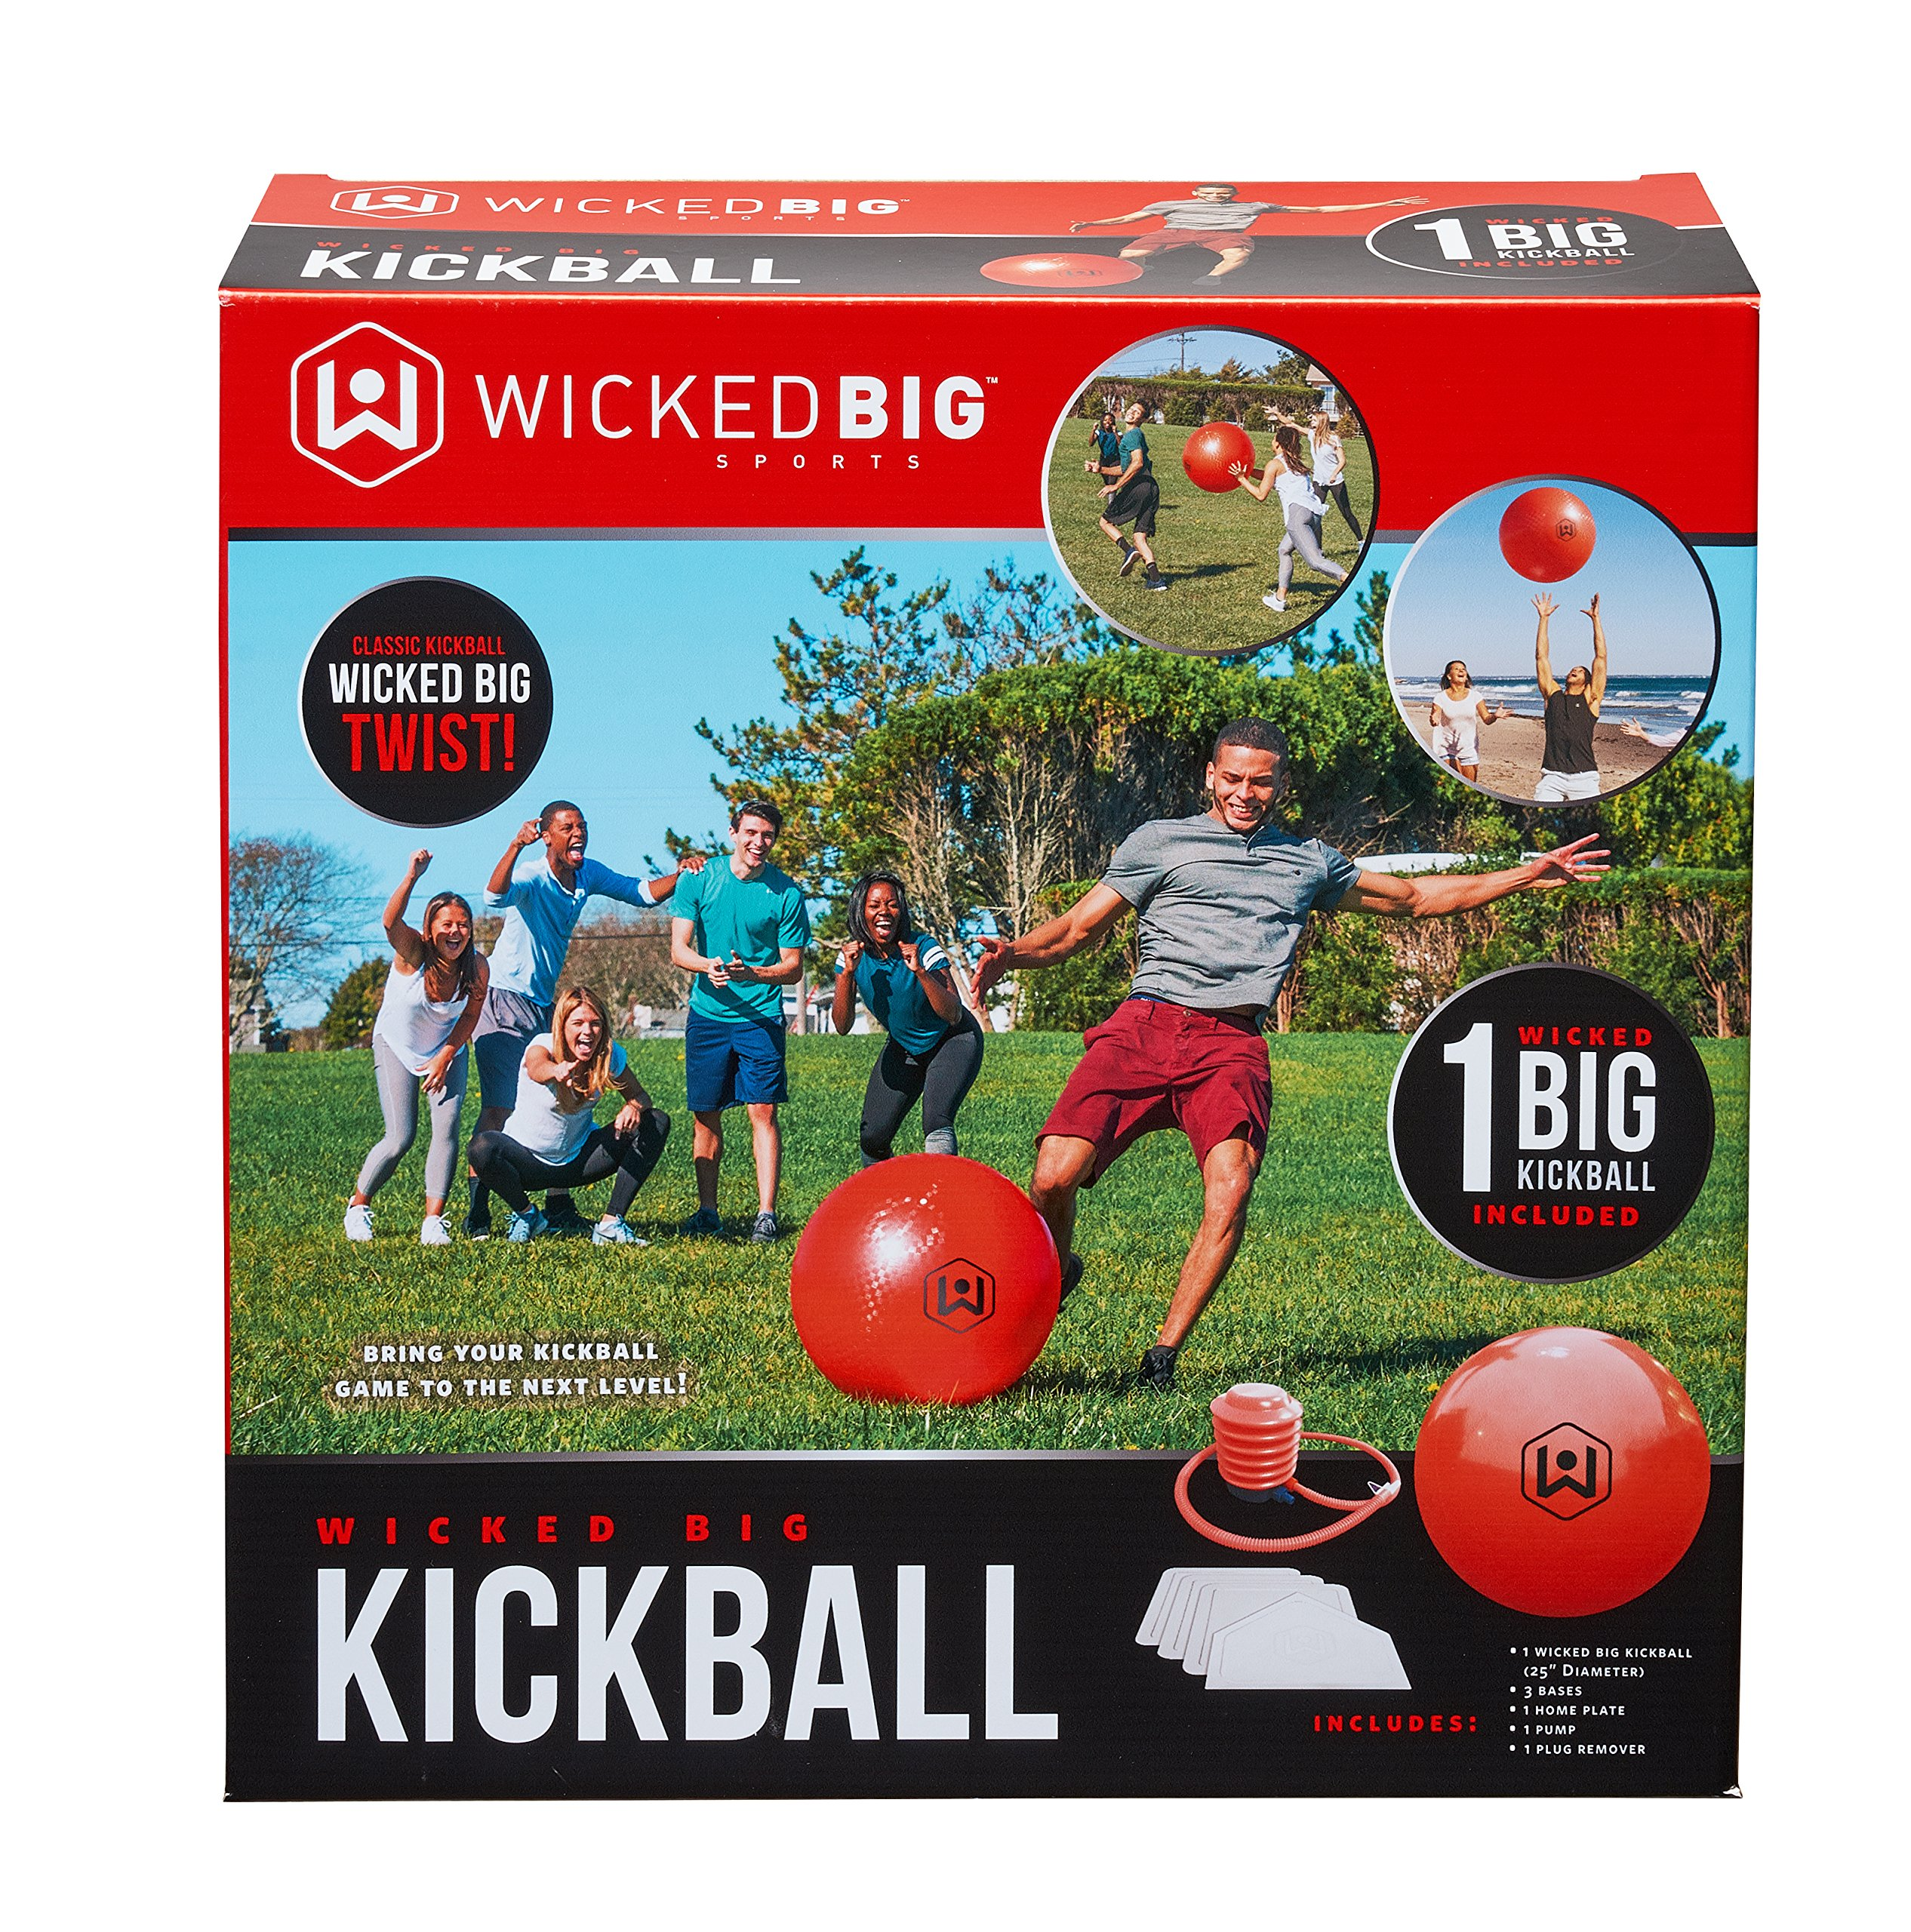 Wicked Big Sports Kickball-Supersized Kickball Outdoor Sport Tailgate Backyard Beach Game Fun for All by Wicked Big Sports